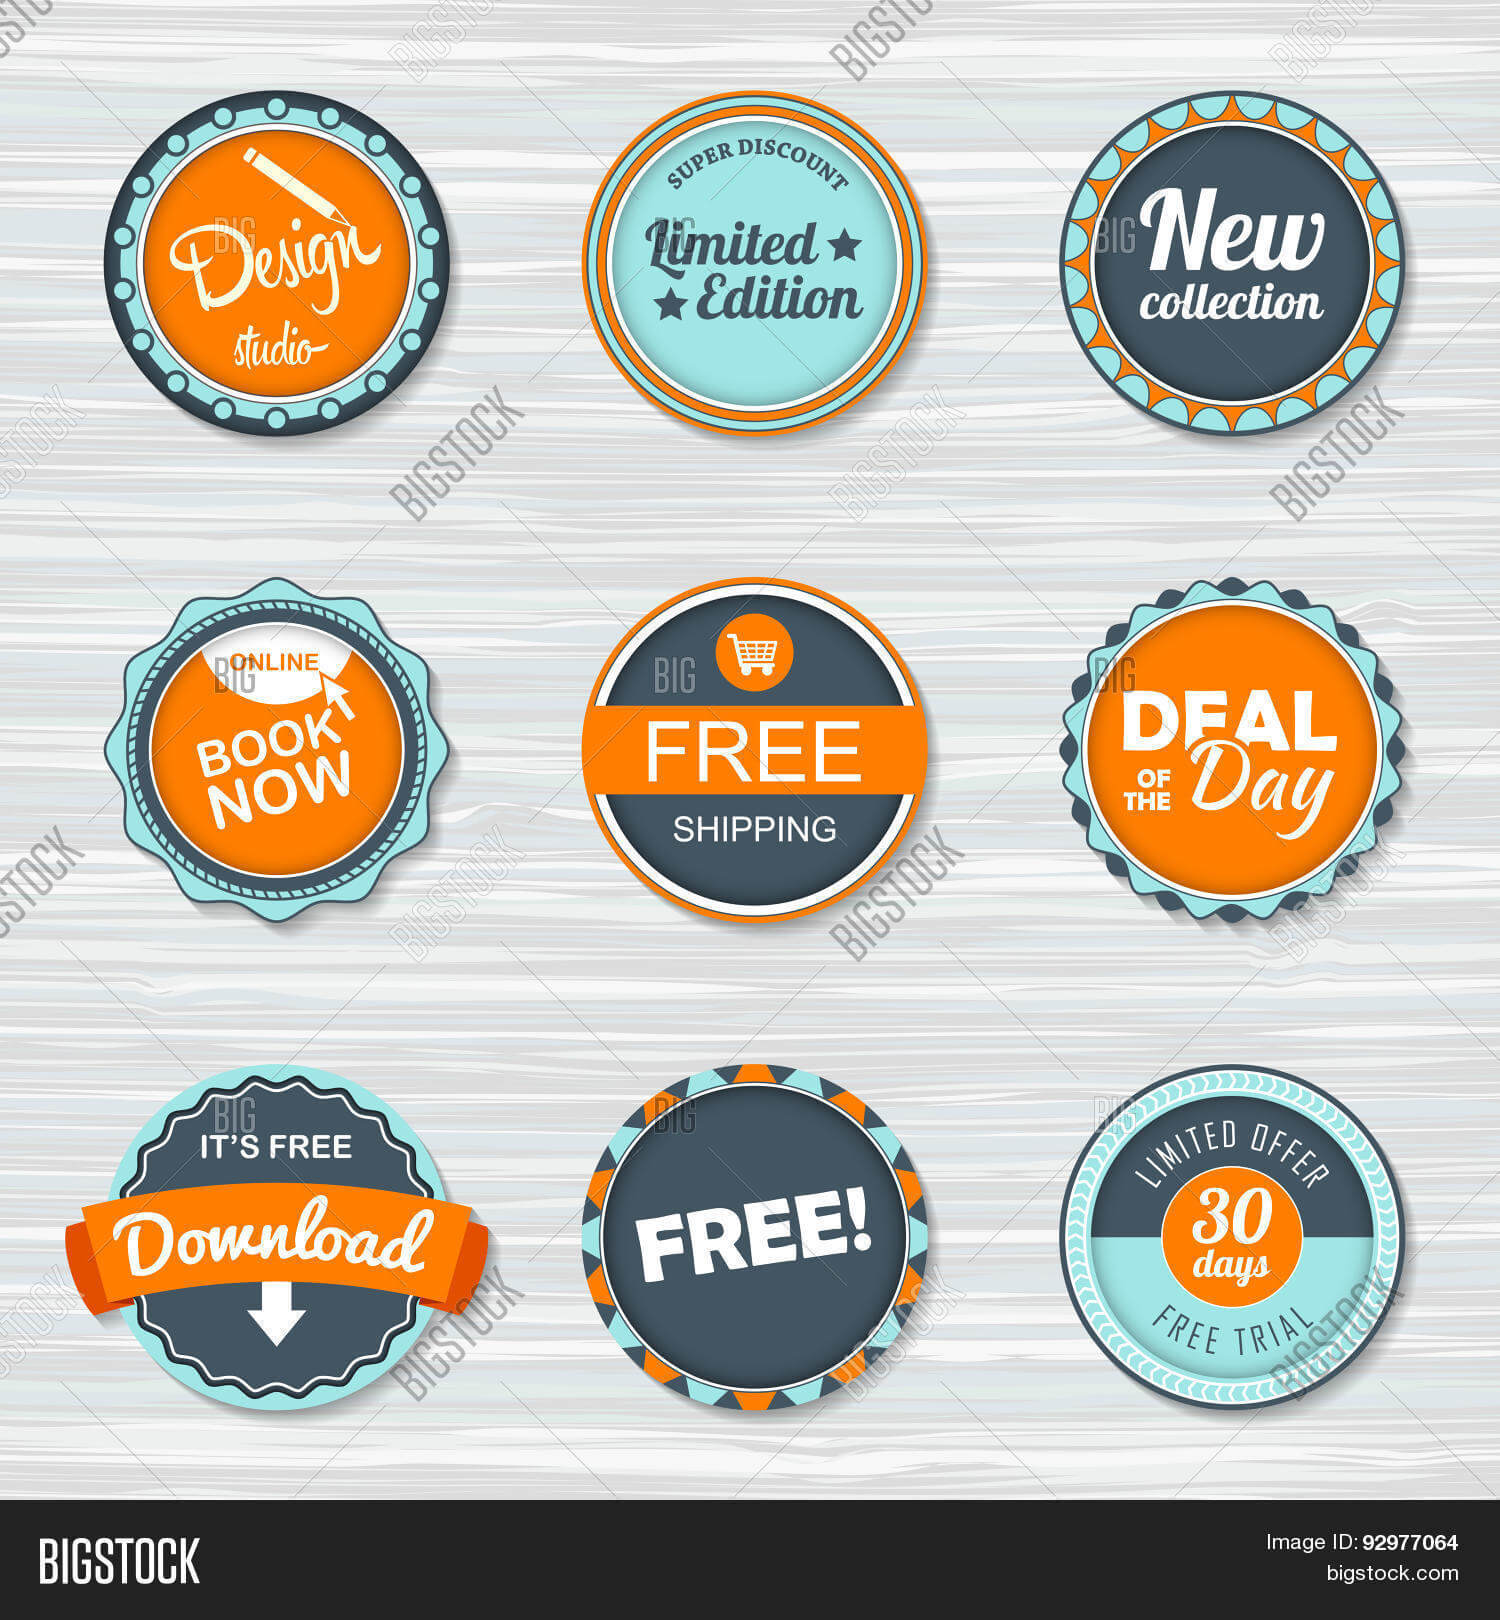 Vintage Labels Vector & Photo (Free Trial) | Bigstock In Book Label Template Free